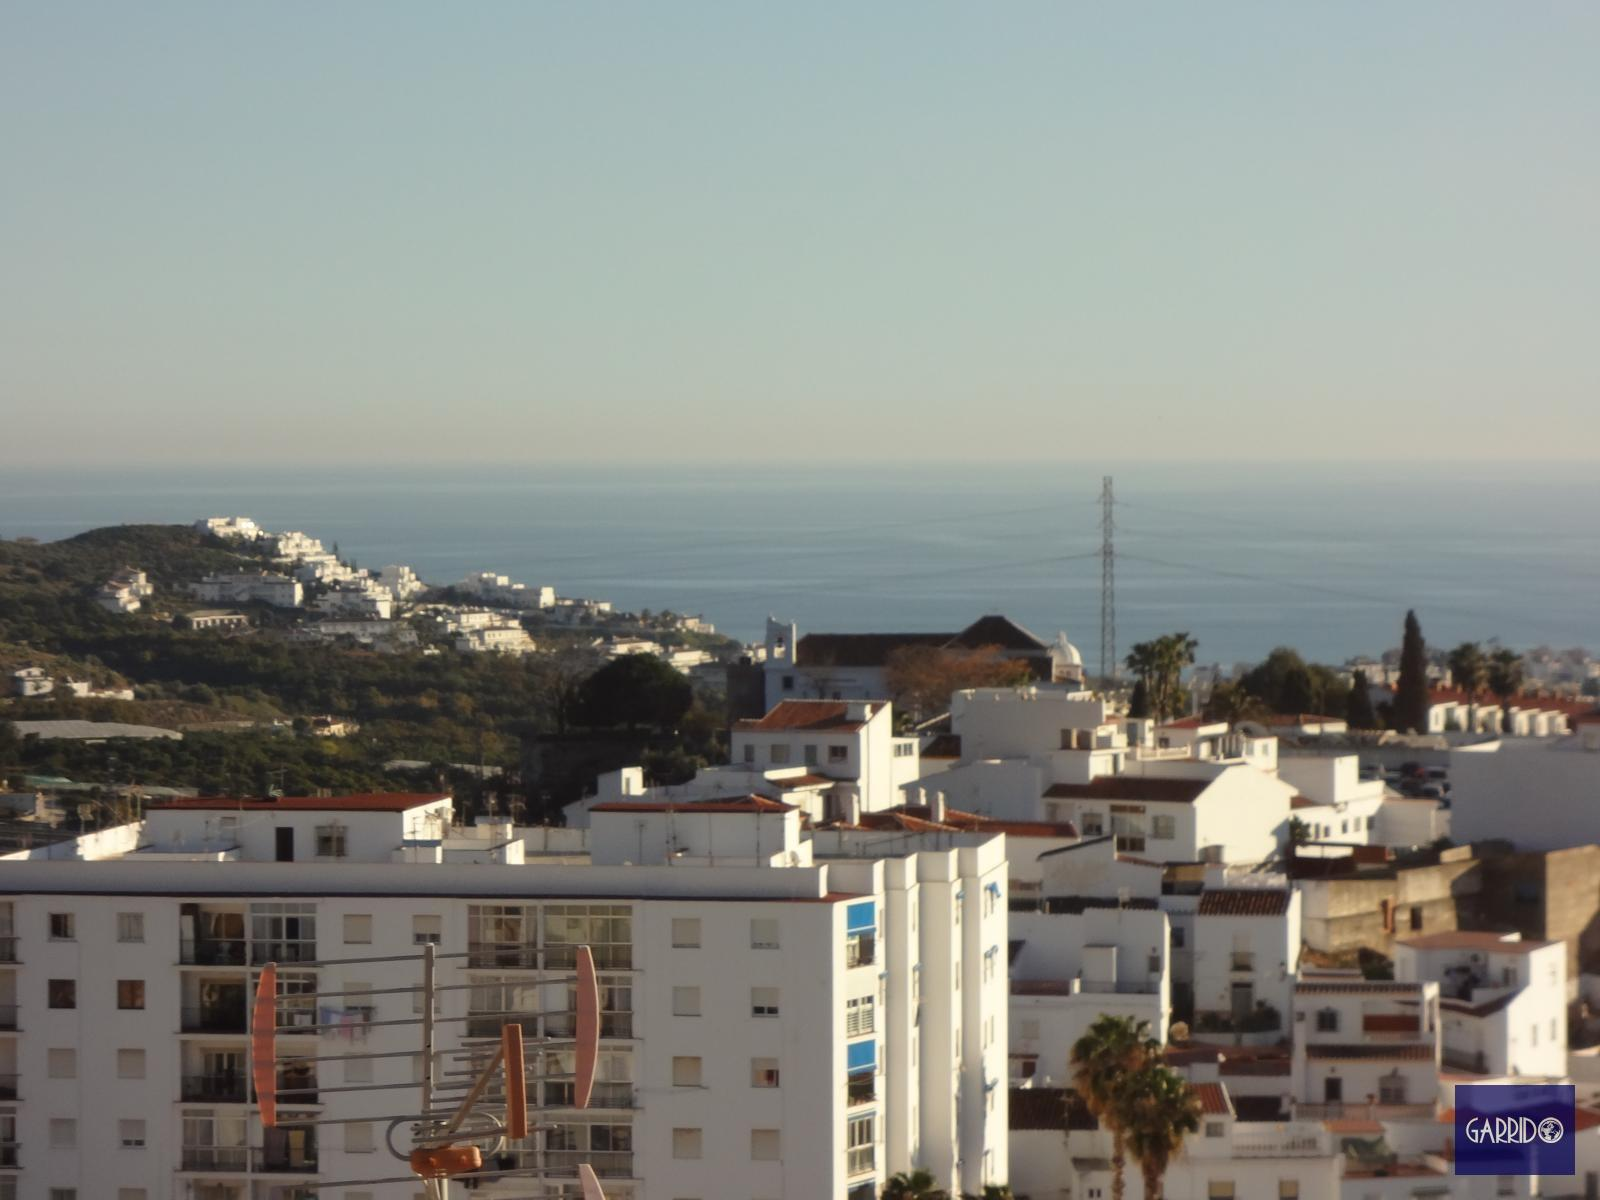 Townhouse for sale in Torrox, 125.000 € (Ref.: 55)